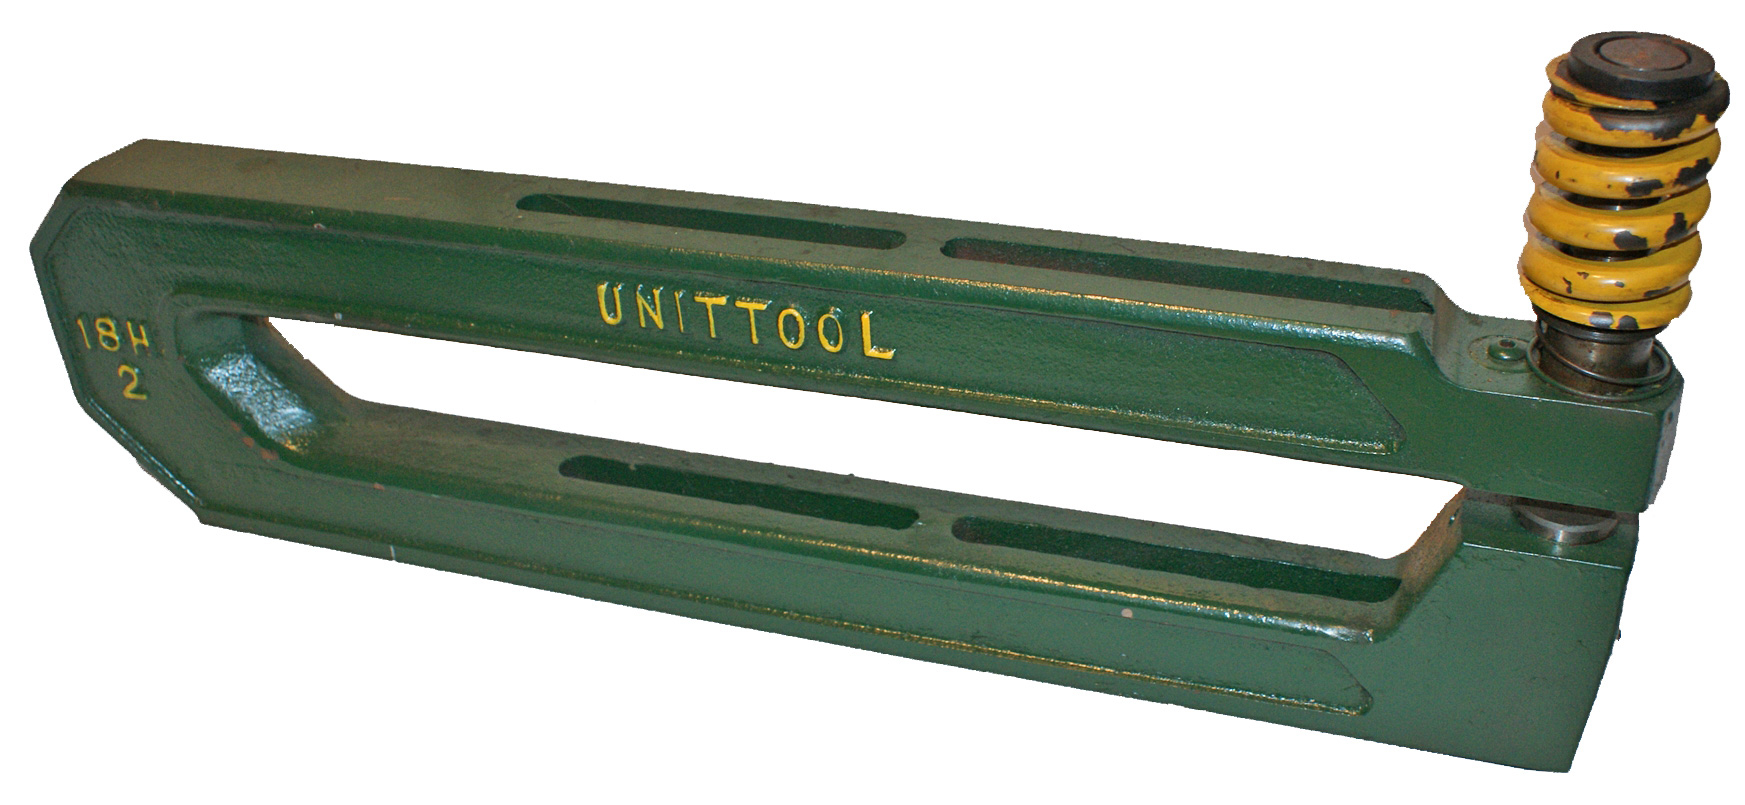 Unittool 18H-2 C-Frame Press Punch